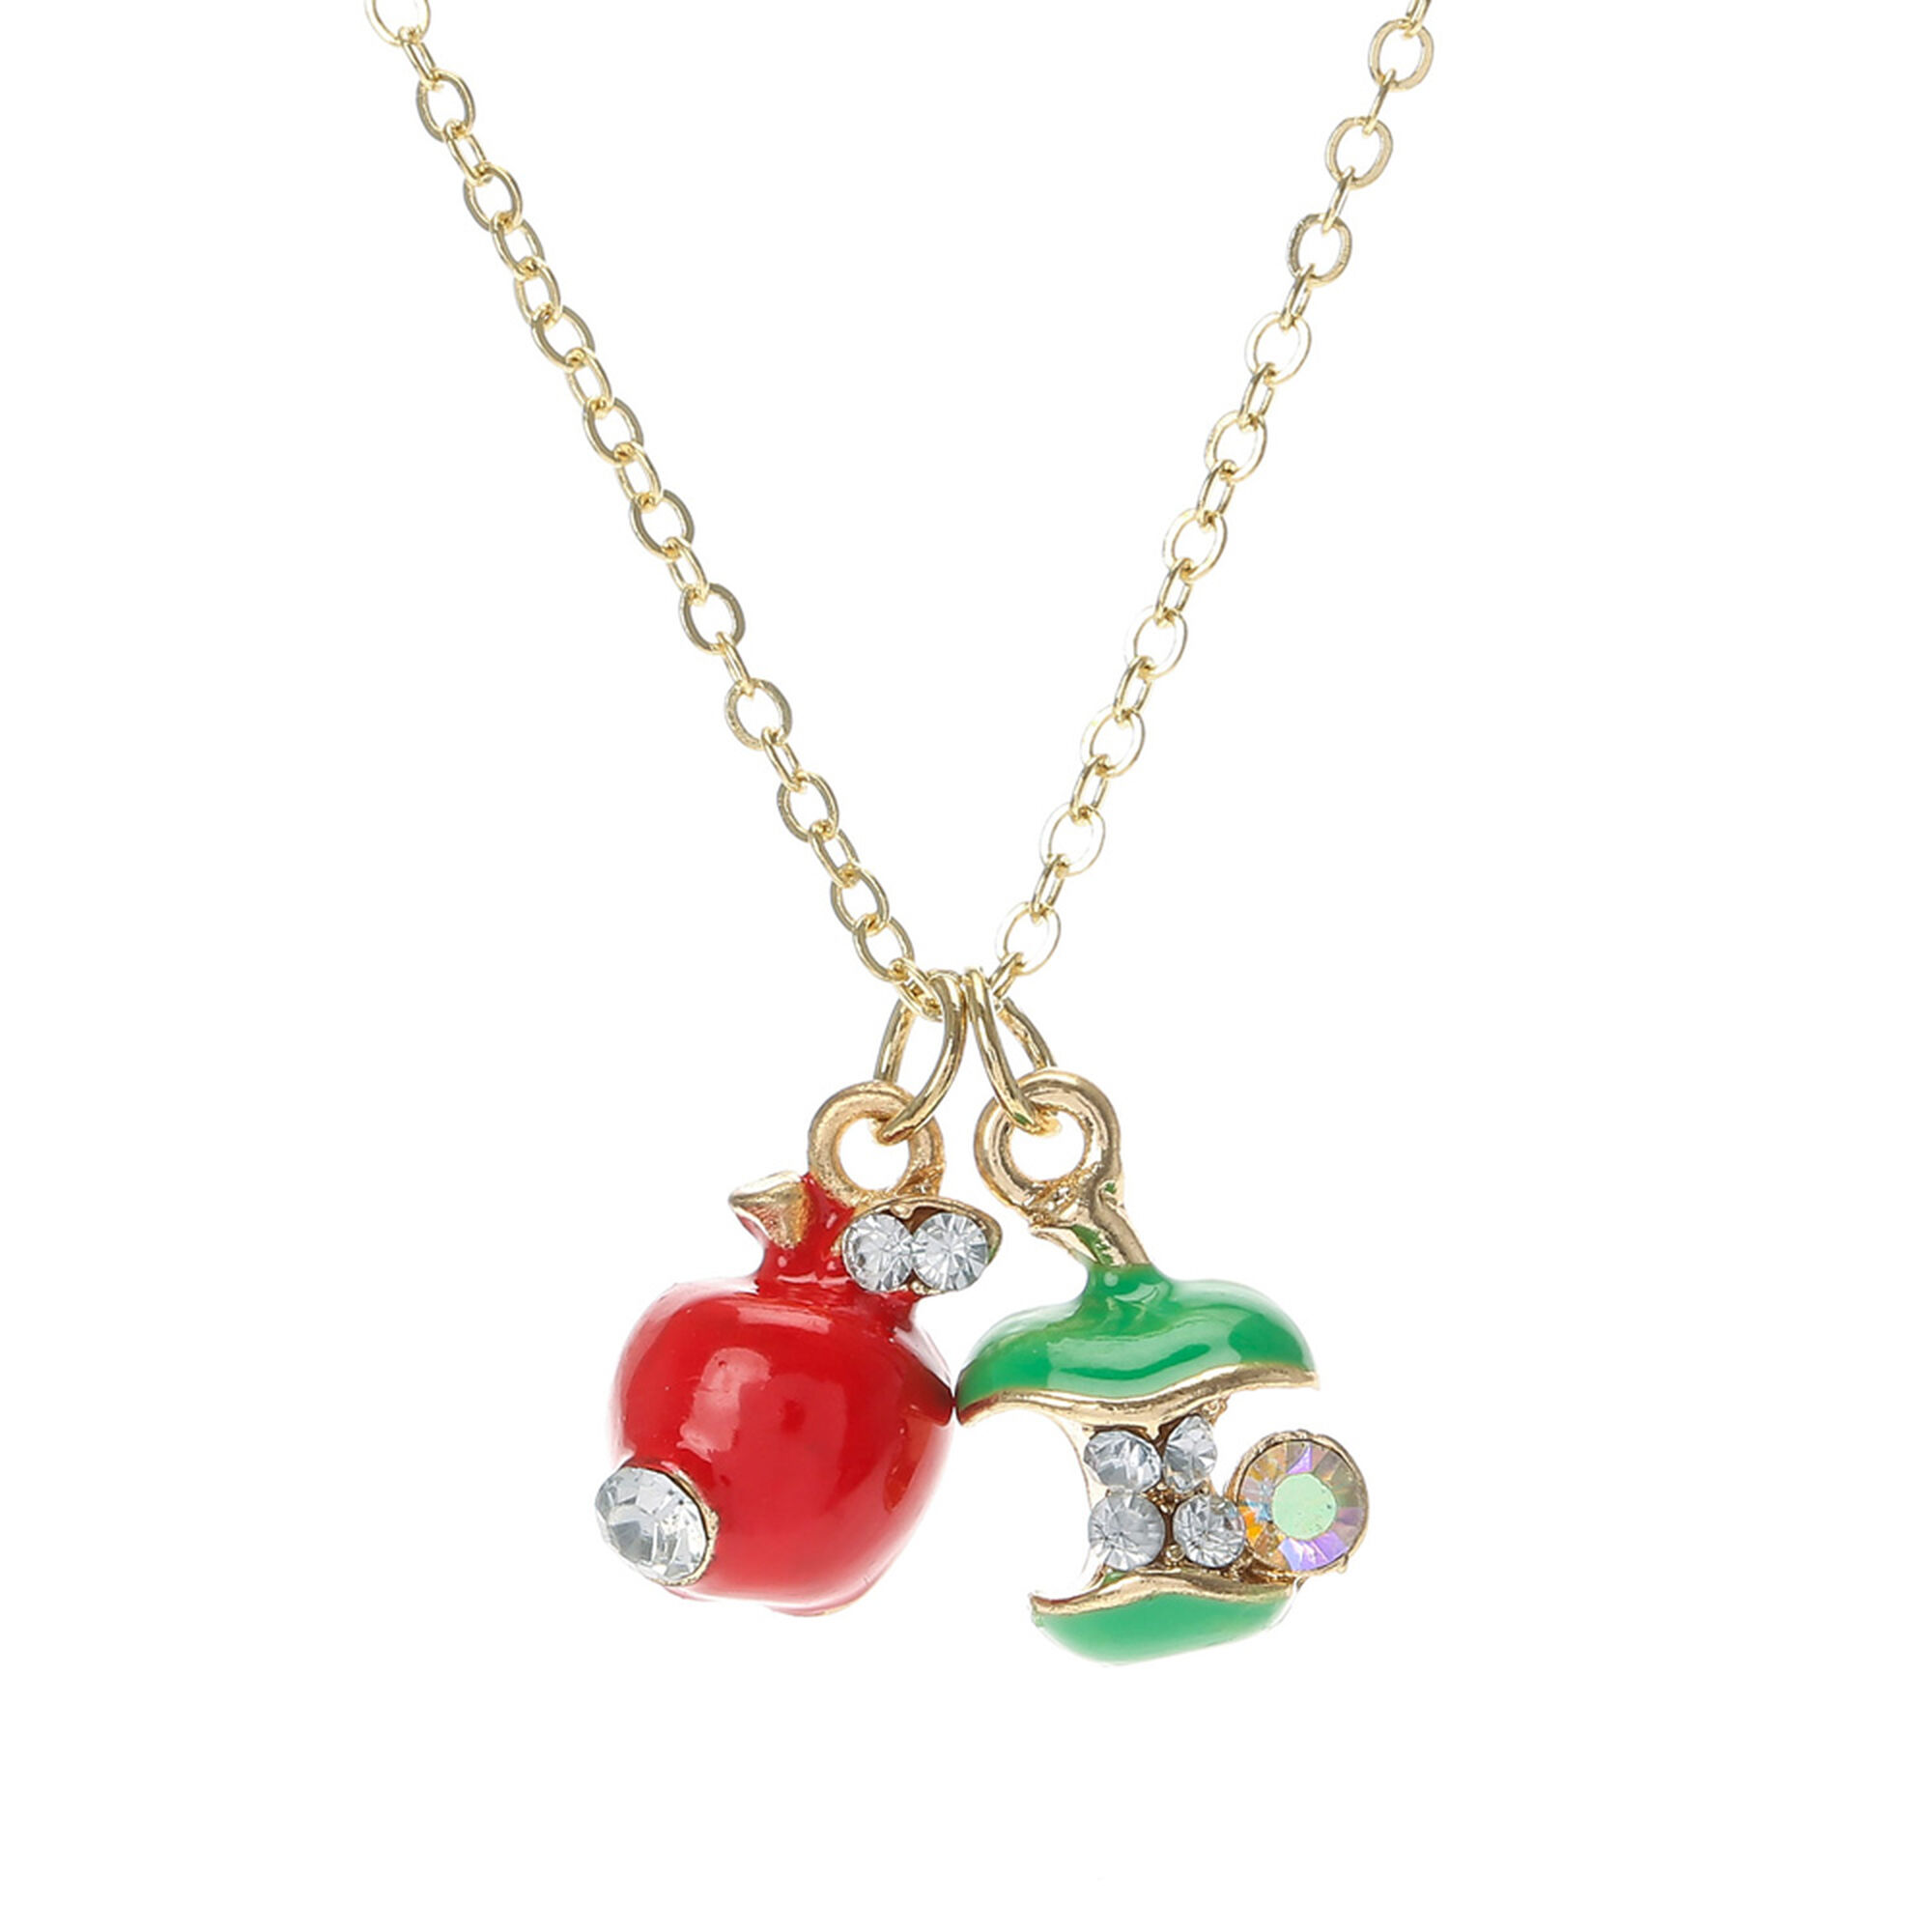 Crystal apple pendant necklace claires crystal apple pendant necklace mozeypictures Image collections